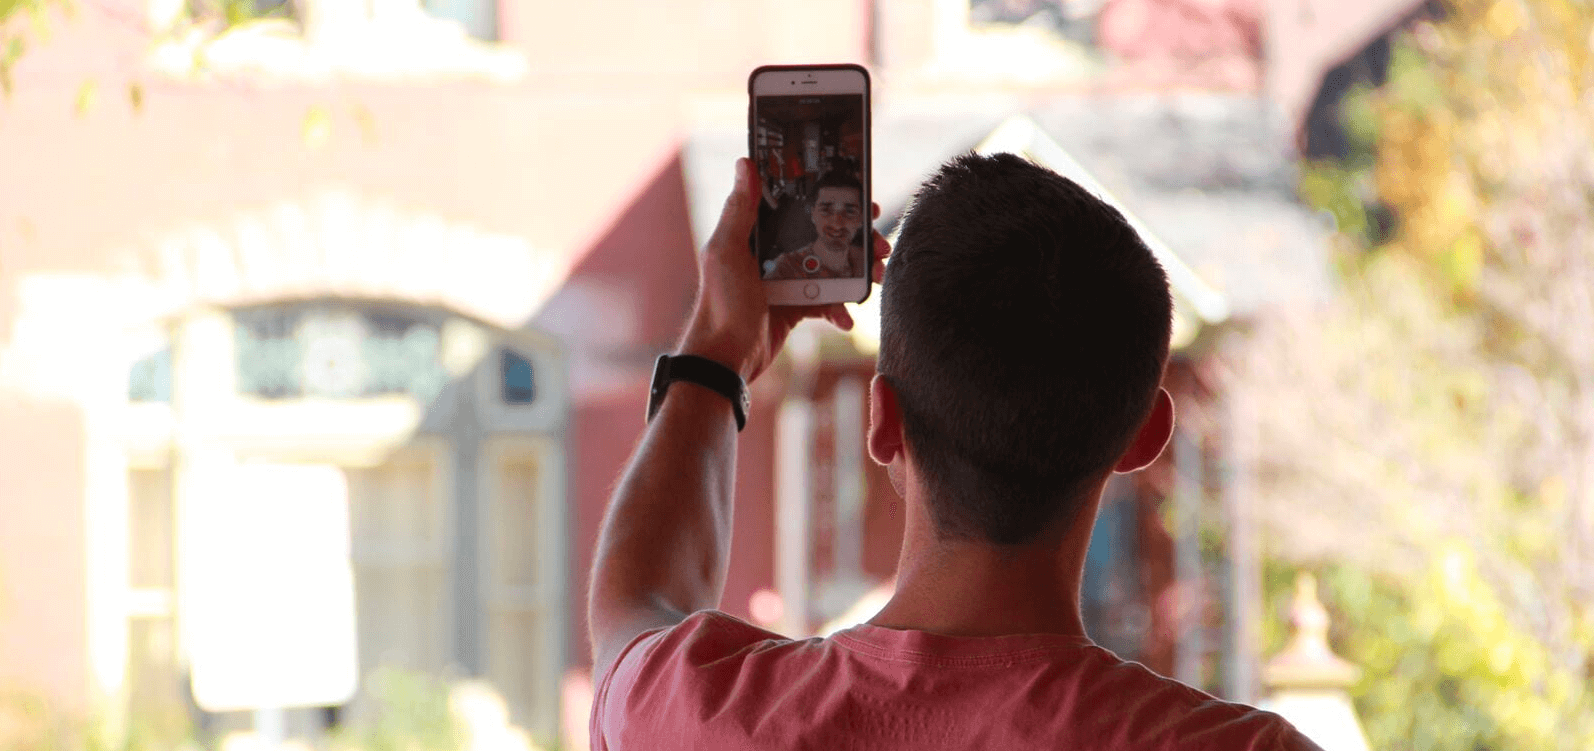 How to Master Vertical Video and Stories: Introducing Our New Email Series